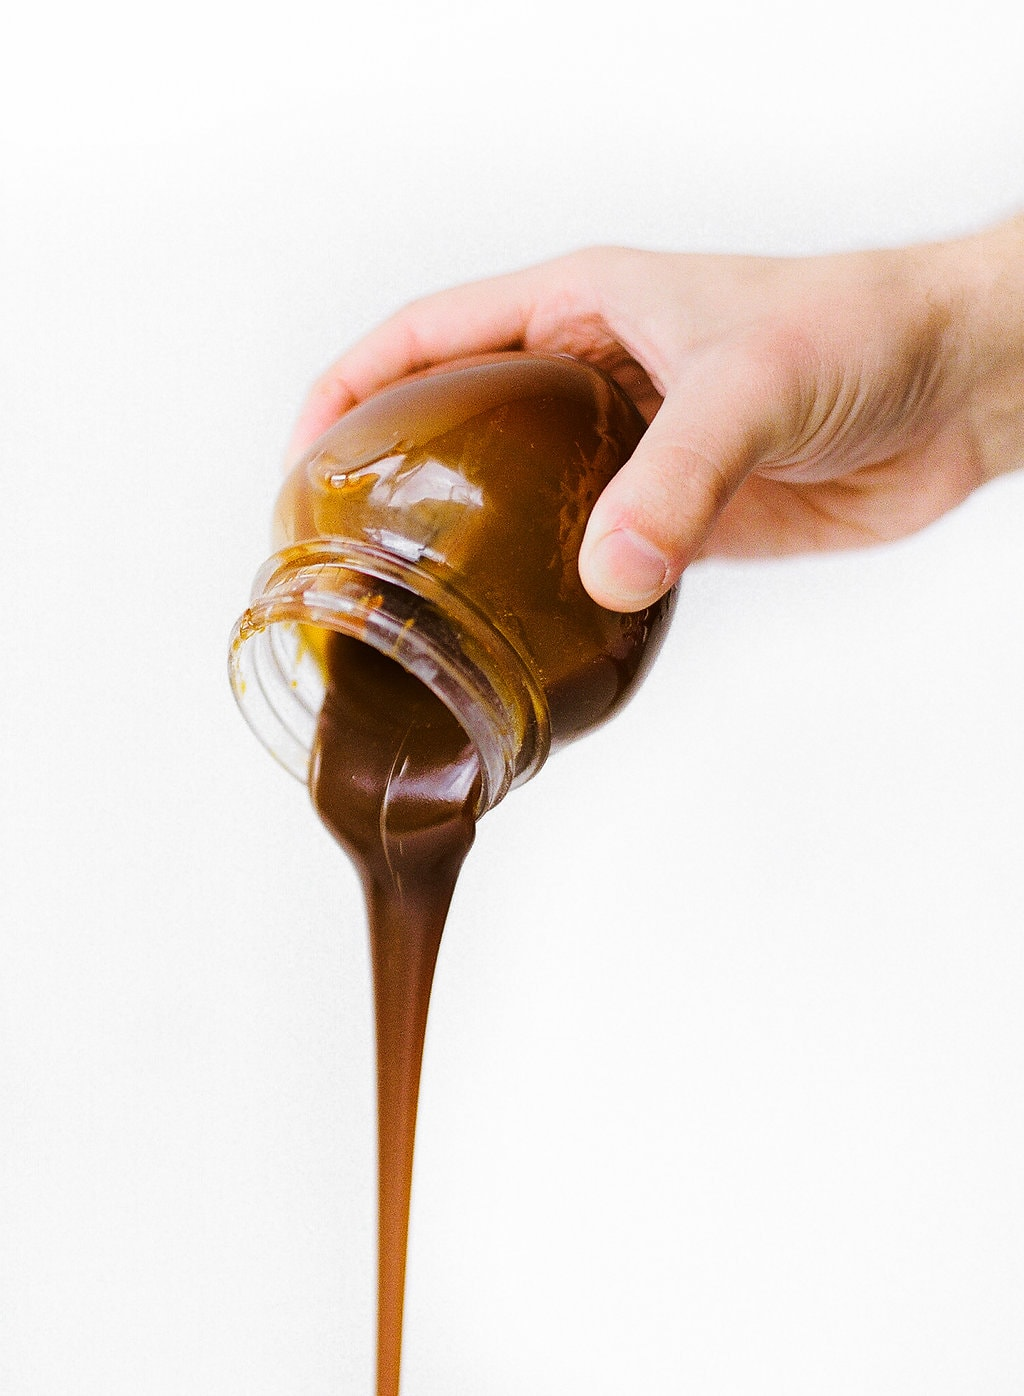 How to Make salted caramel sauce WITHOUT a thermometer or any special equipment. Takes just 15 minutes and is SO much better than store-bought. Follow the video to see exactly how it's made.